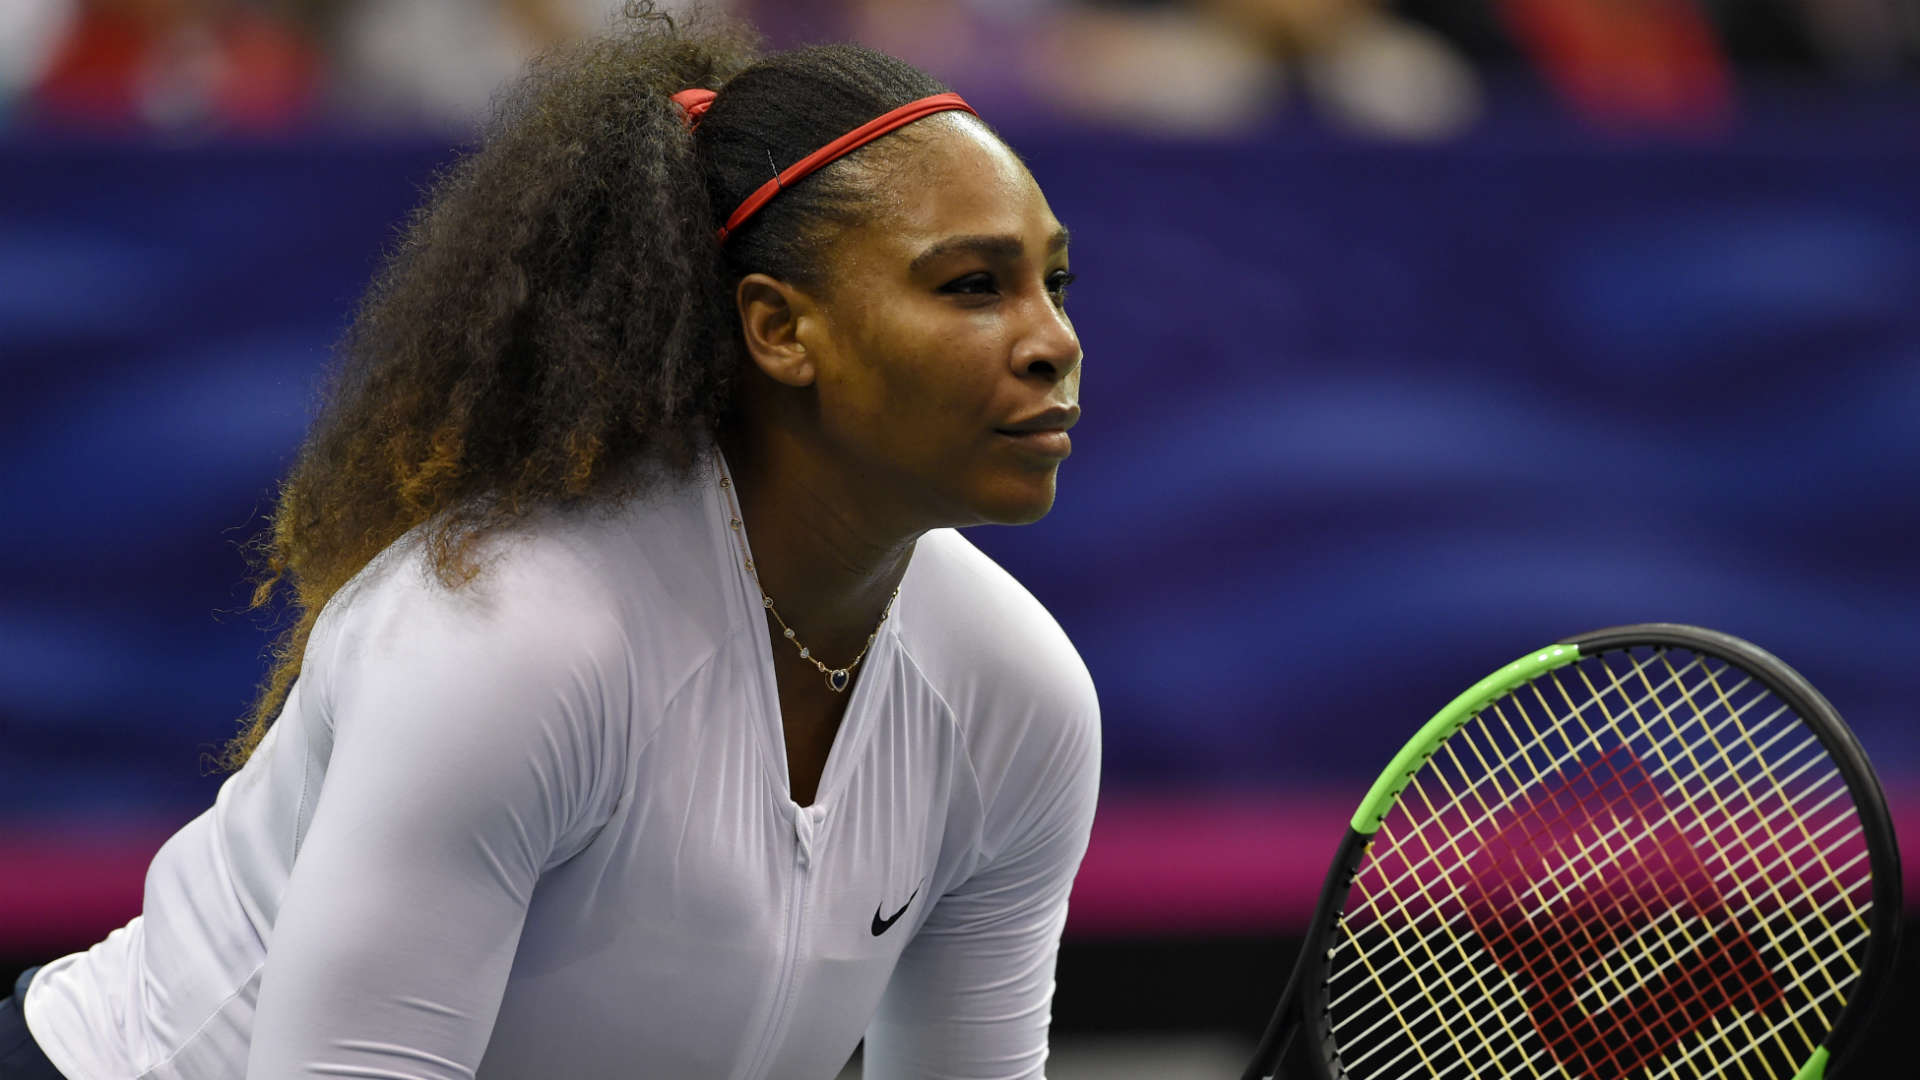 As Serena Williams returns, sister Venus says her game hasn't left